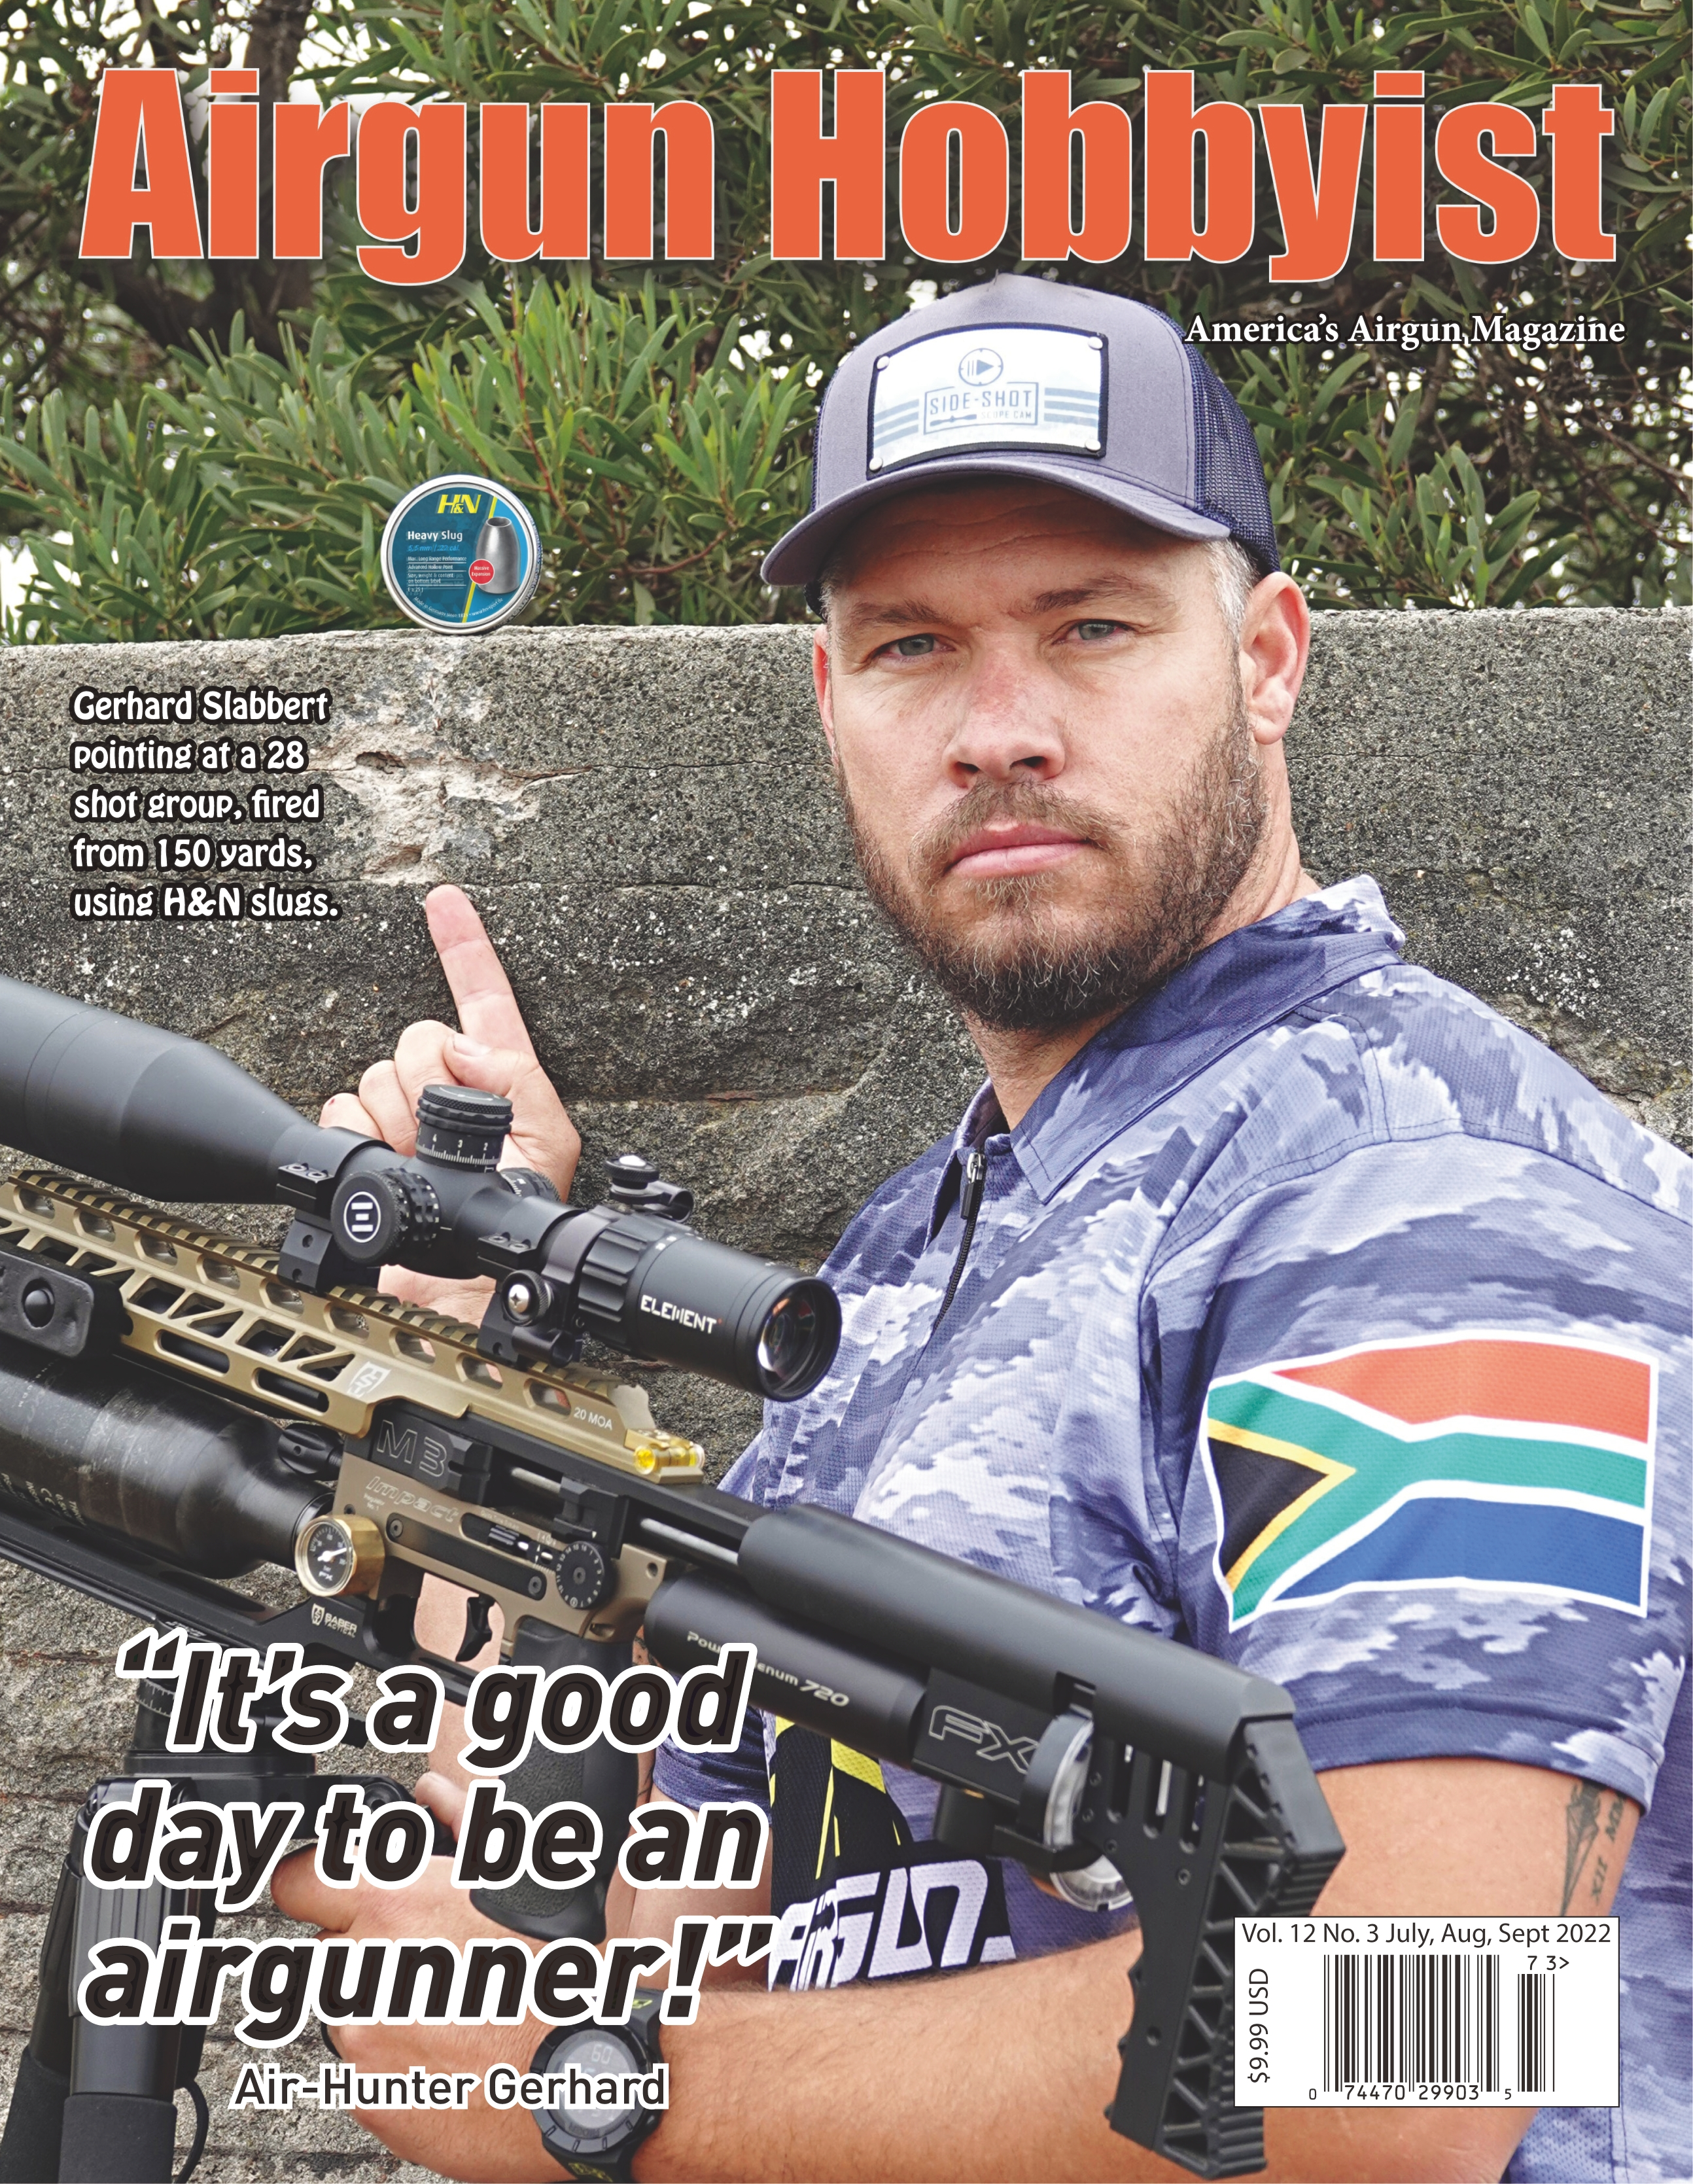 Airgun Hobbyist Magazine